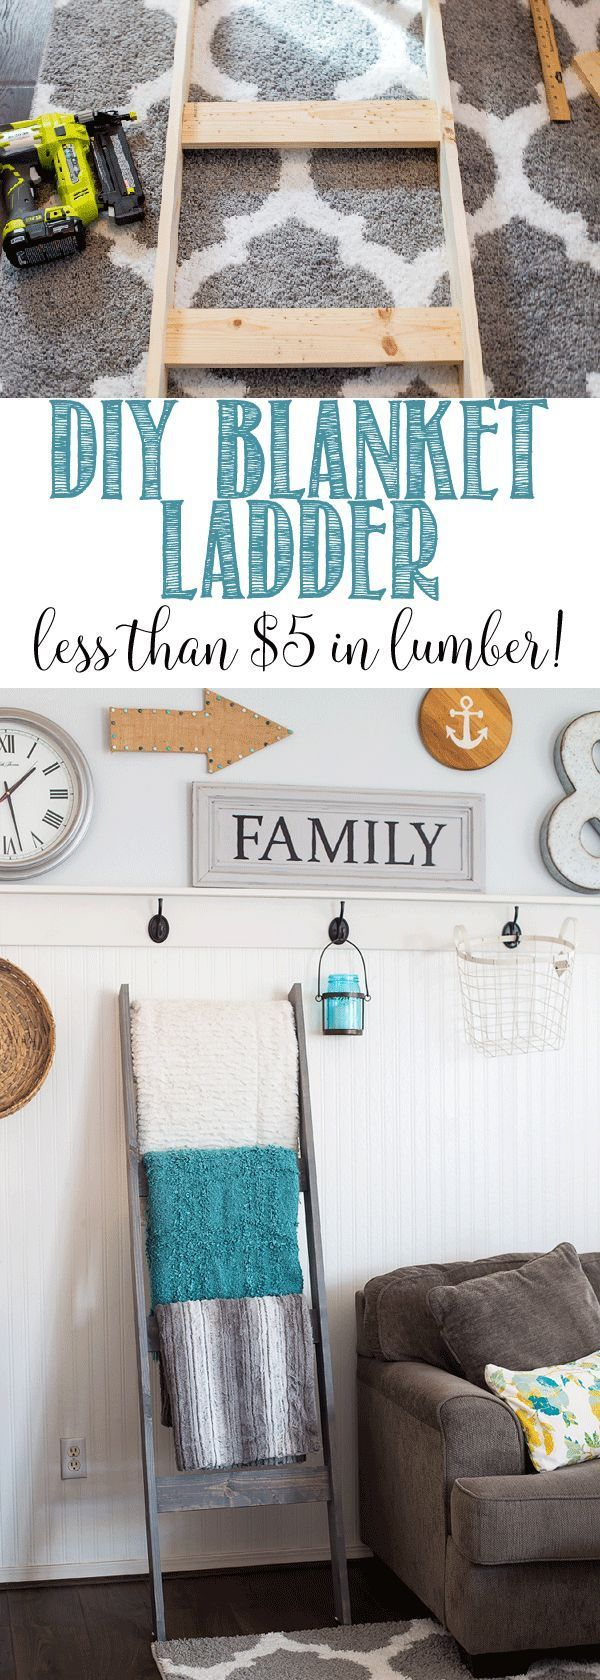 Diy blanket ladder under diy blanket ladder diy blankets and